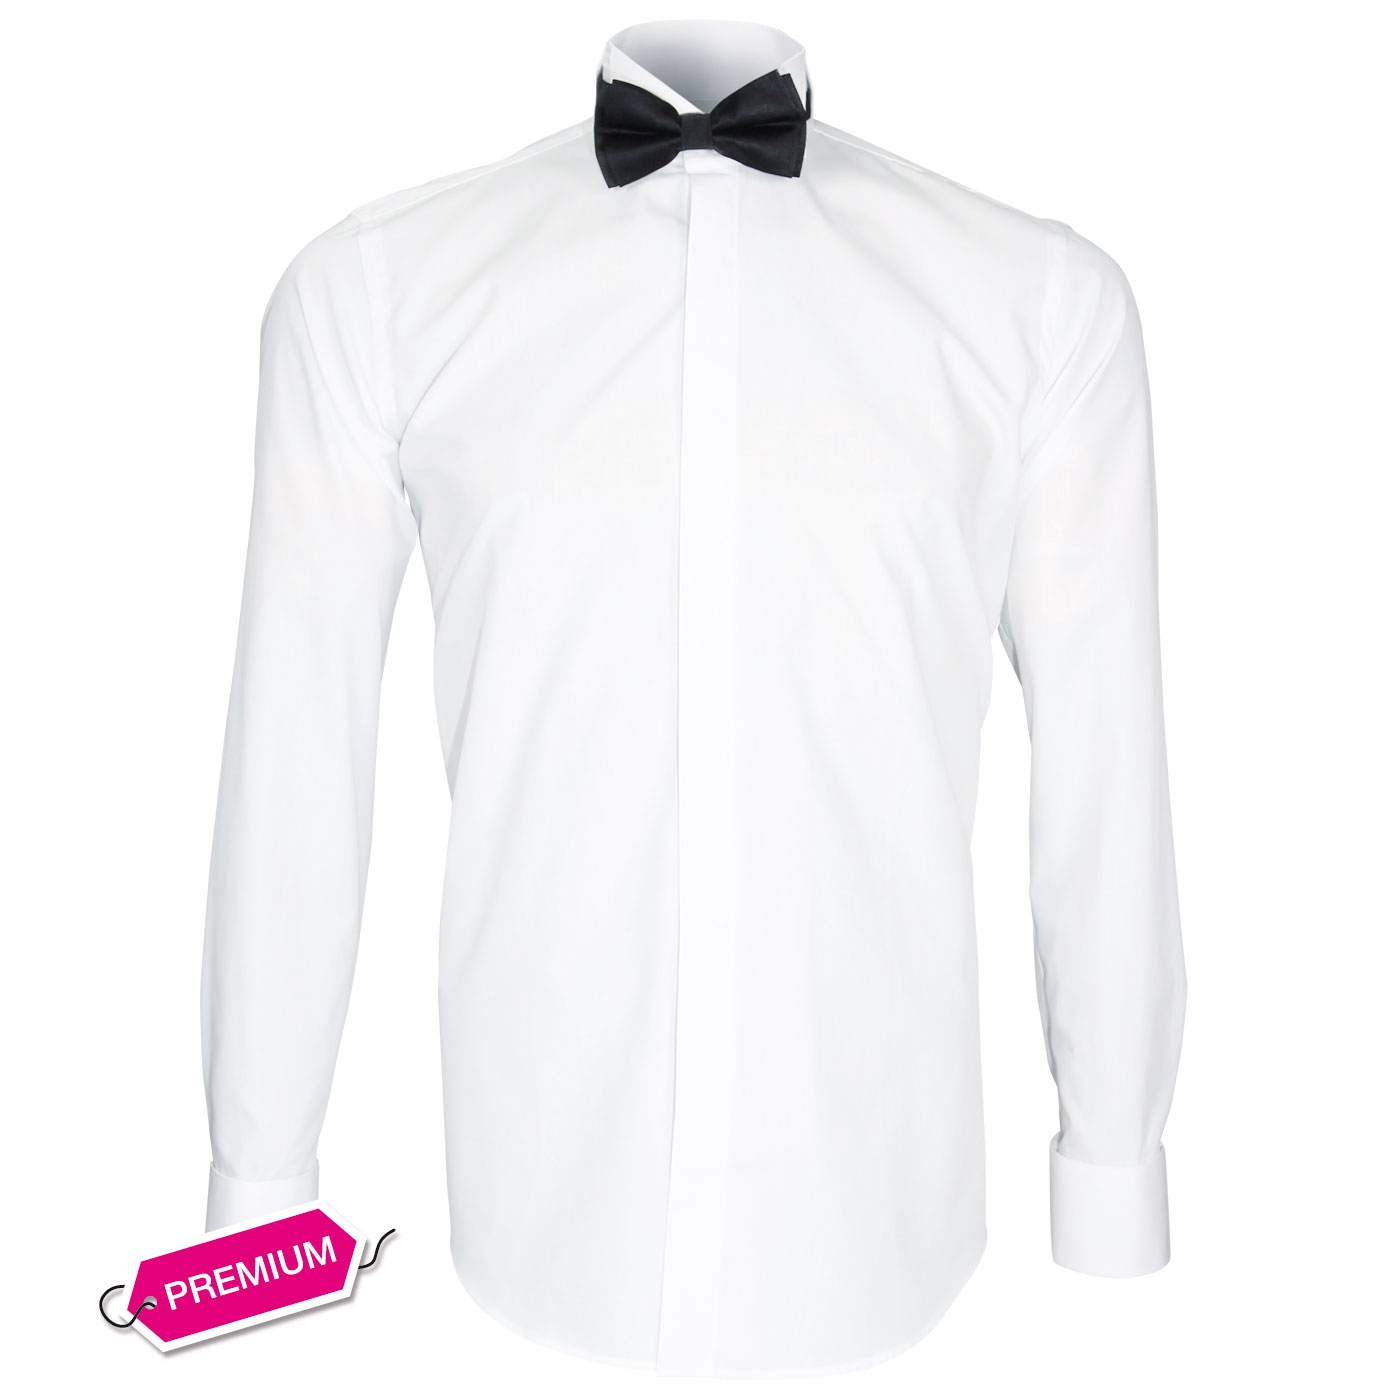 The shirt bow tie collar original and elegant for events